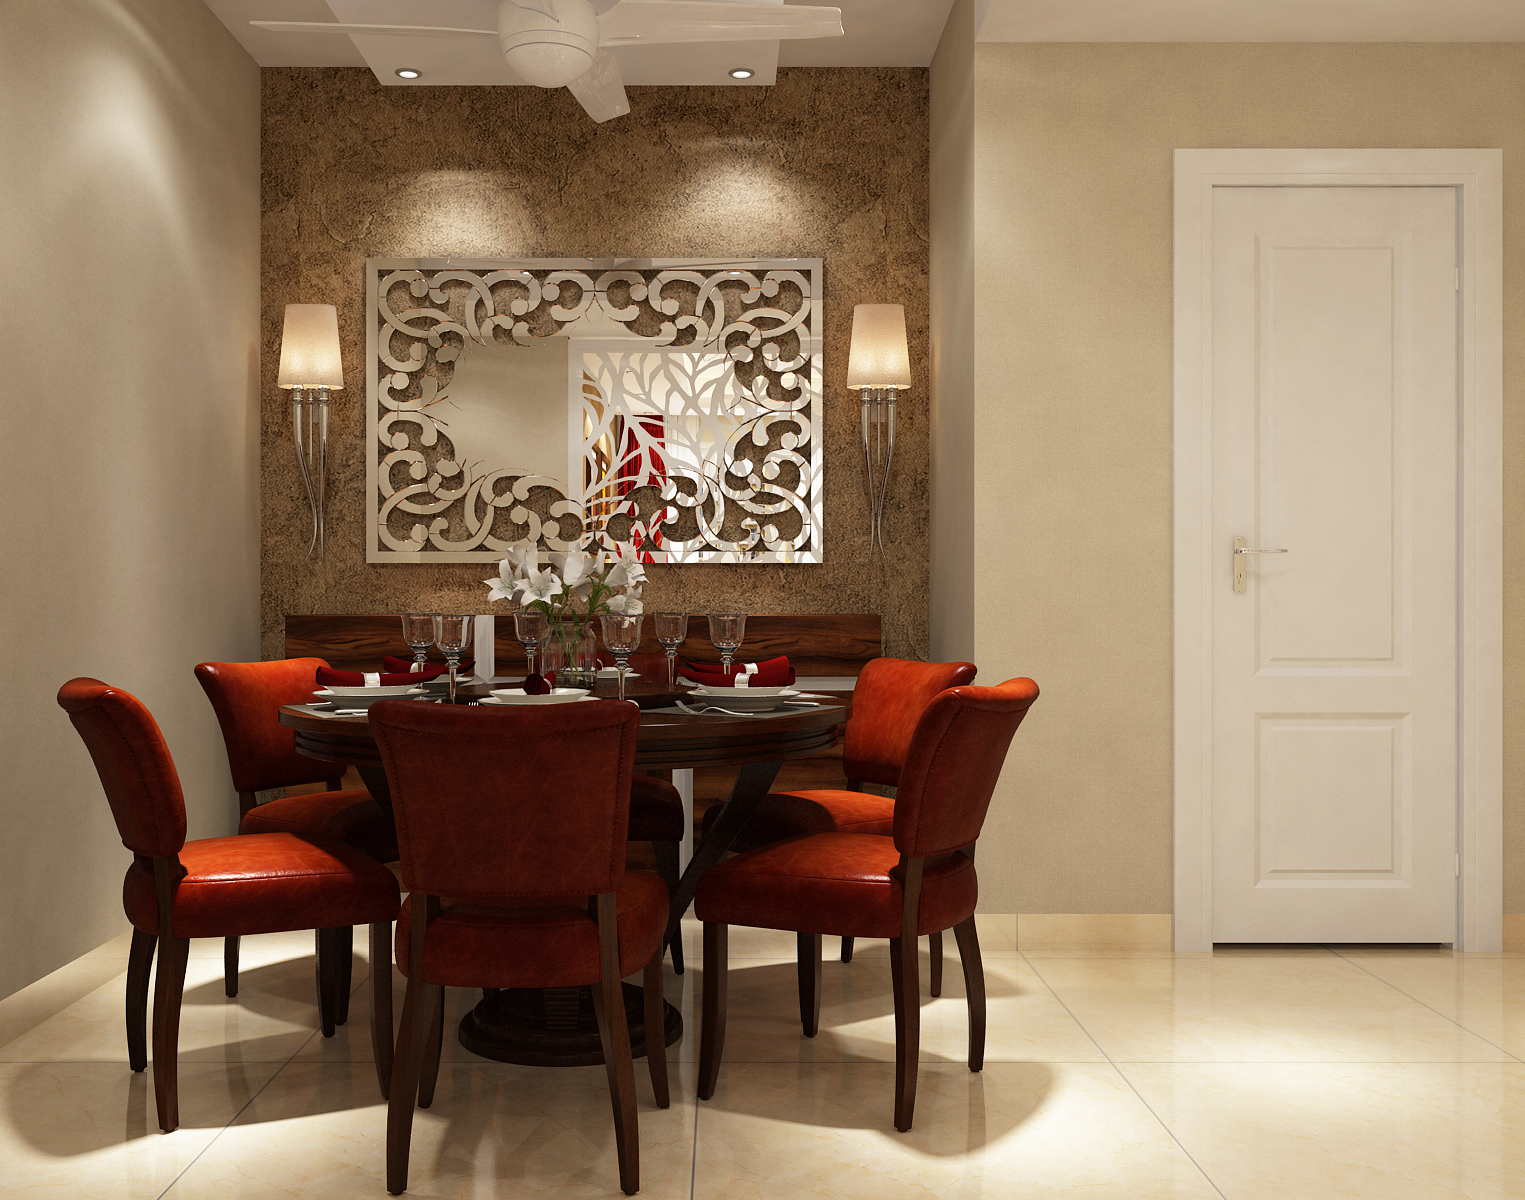 Furniture Lipika Sud Is One Of India S Leading Interior